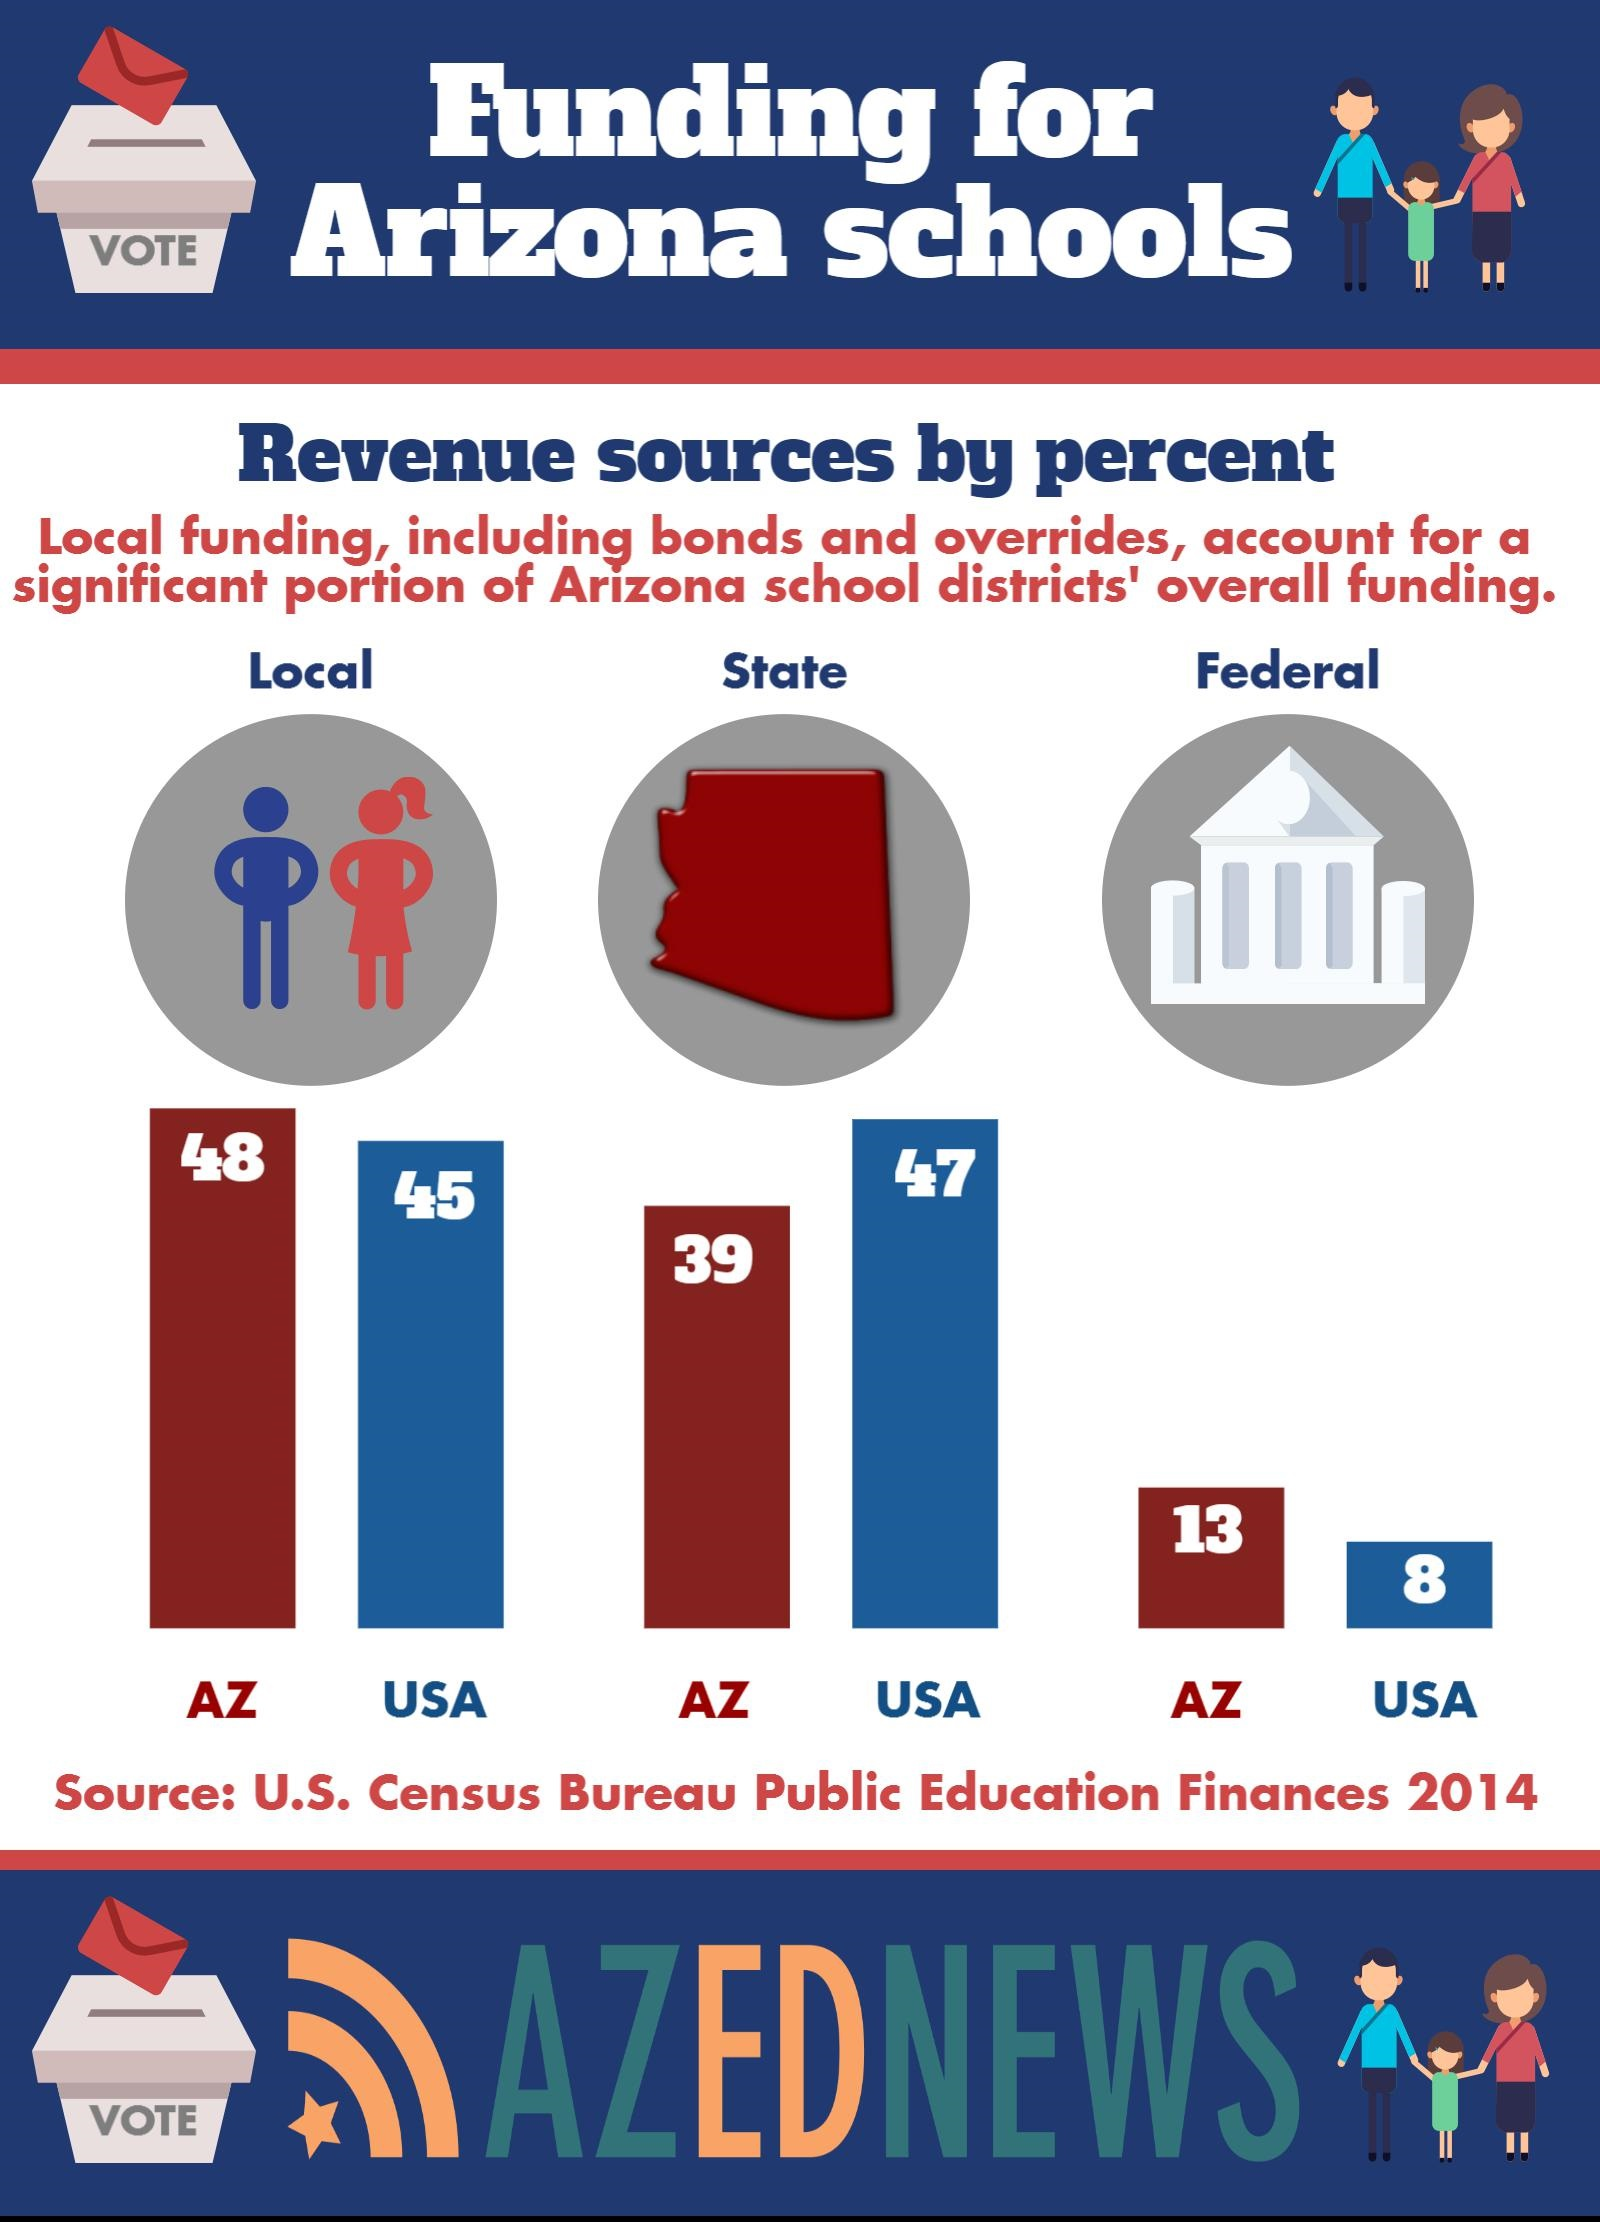 Funding for Arizona Schools AZEdNews2016RevenueSourcesInfographic